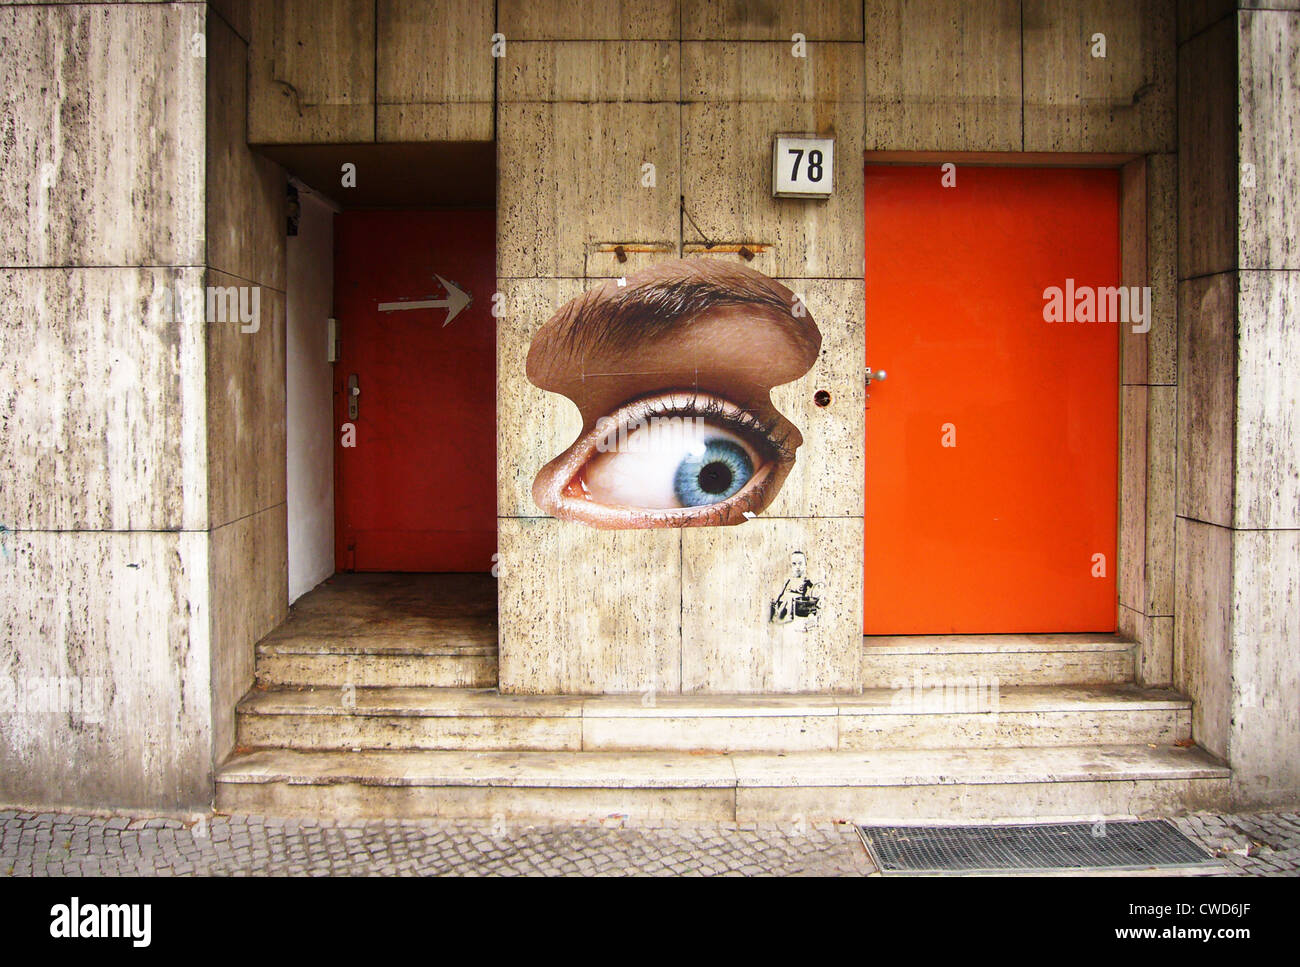 Auge, street-art Stockbild